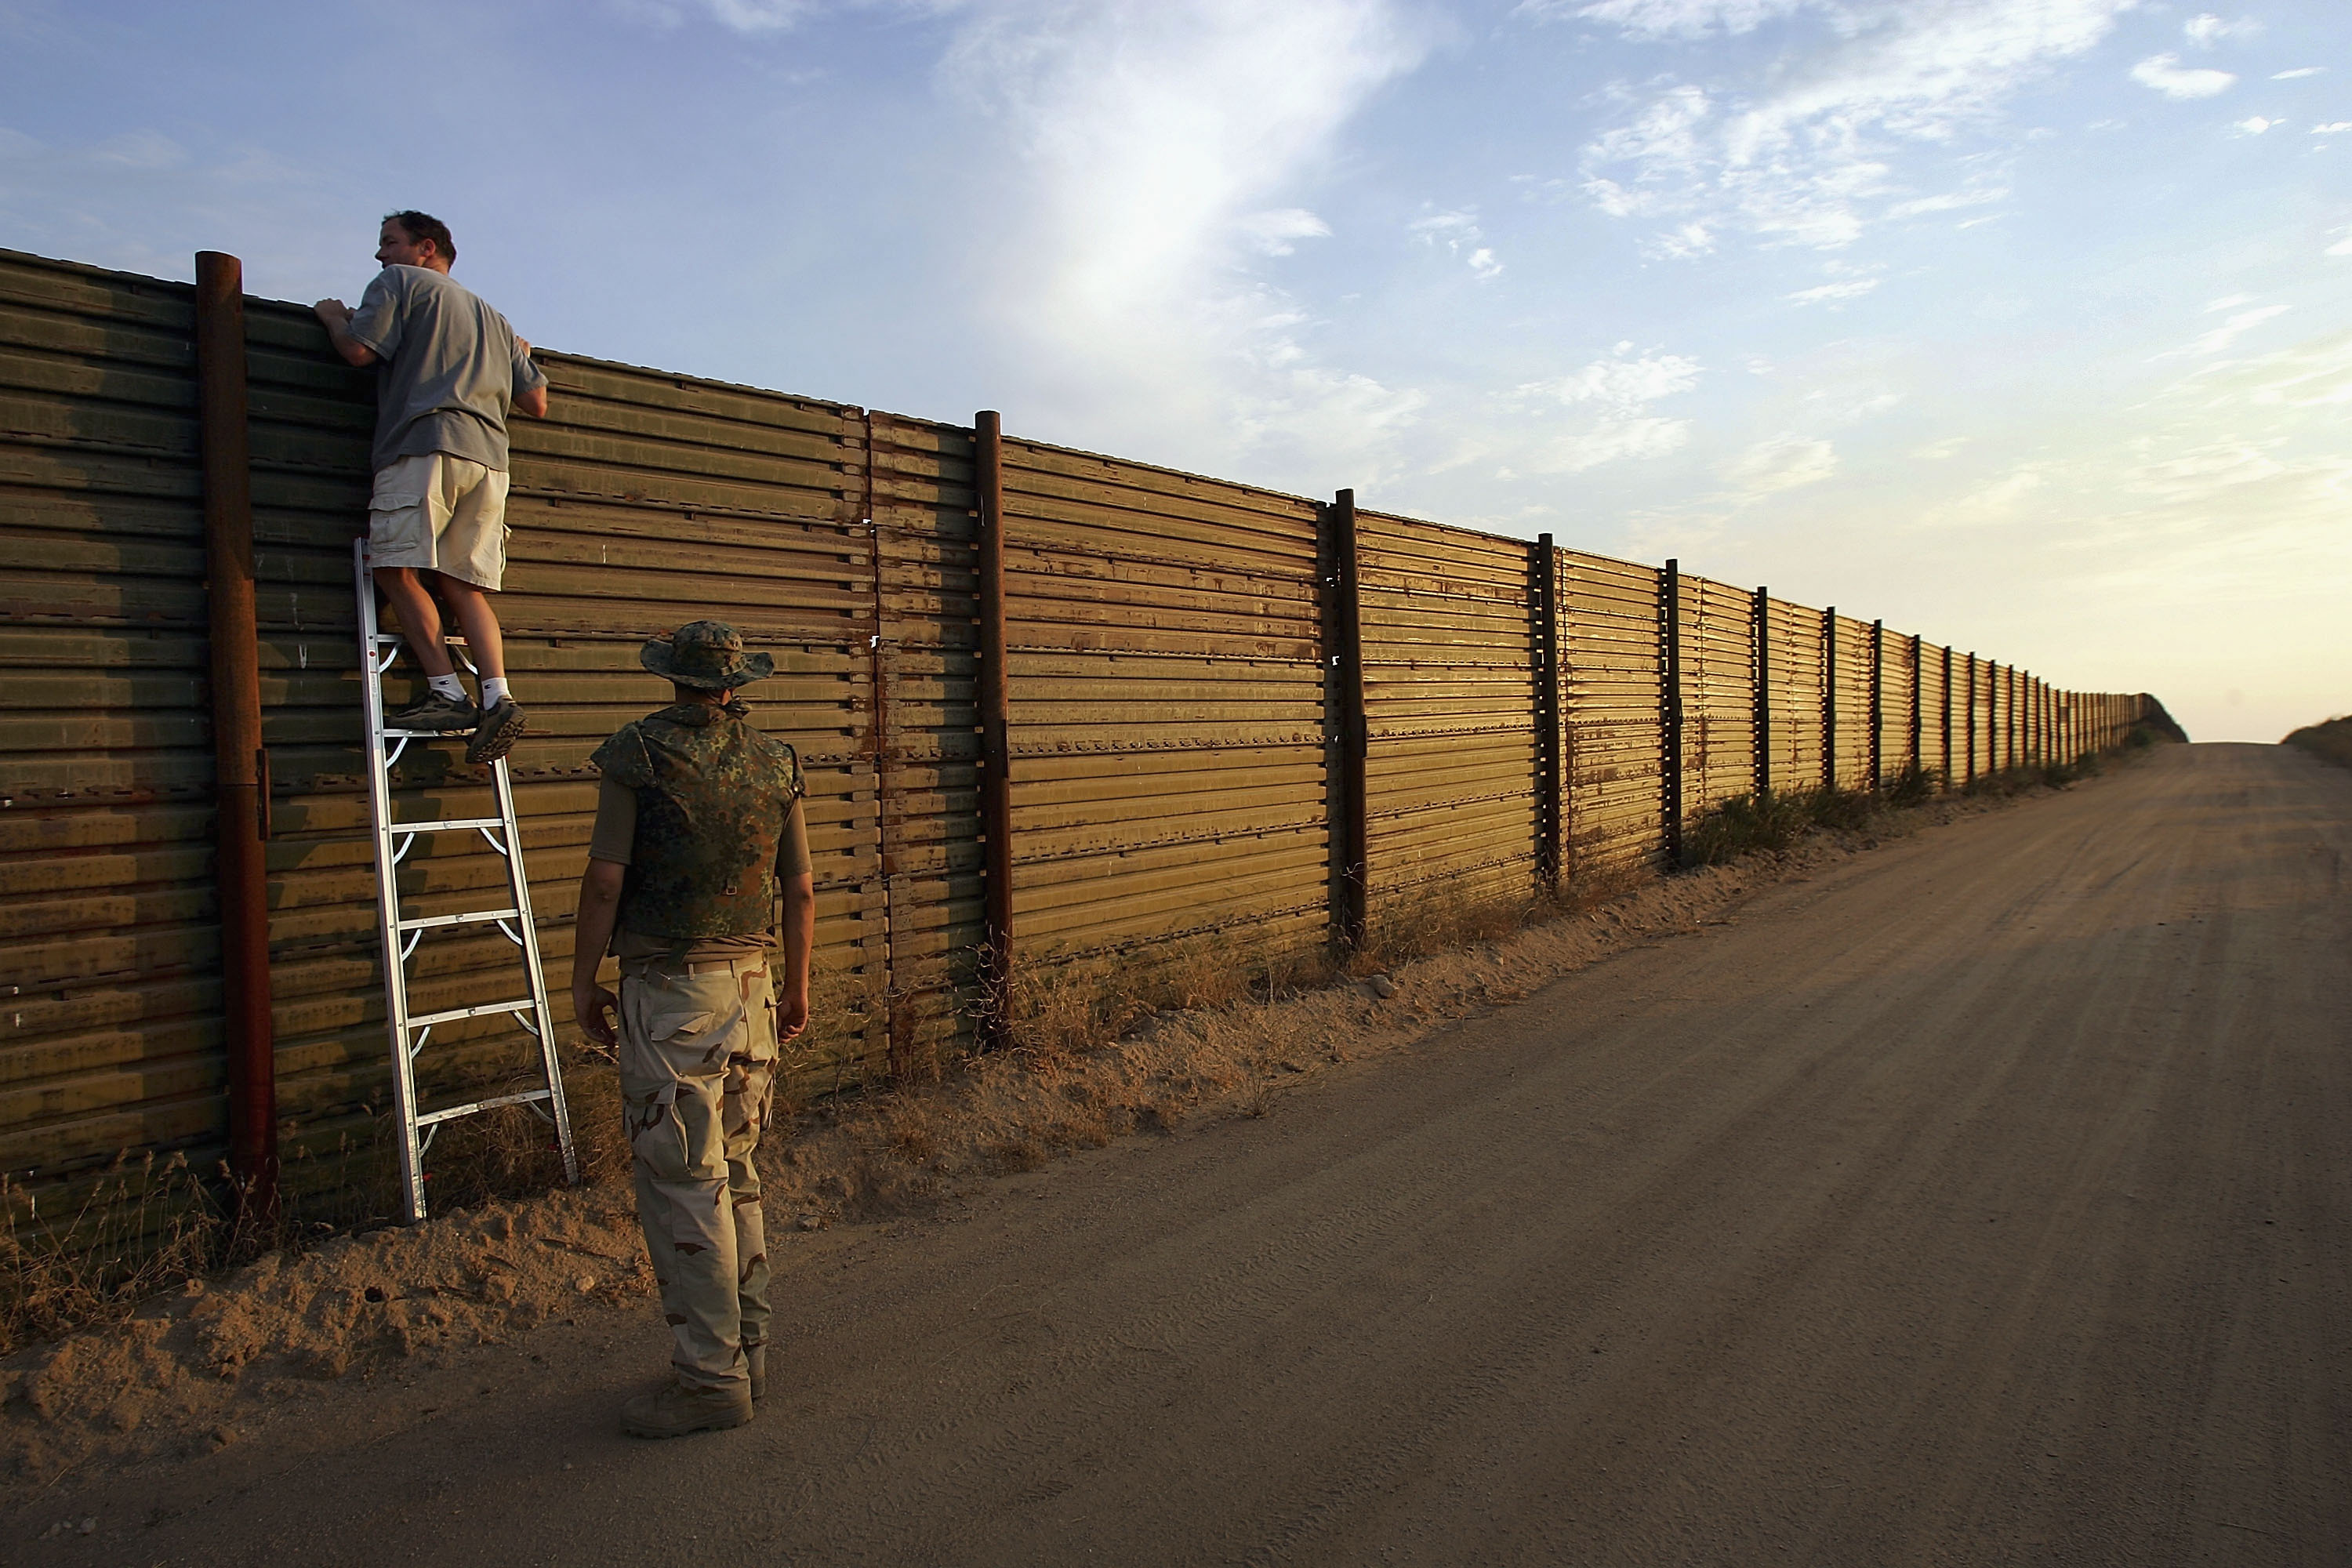 CAMPO, CA - JULY 19: Volunteers look over the US-Mexico border fence to see how illegal border crossers may jump the fence before going on the nightly patrol by citizen volunteers searching for people crossing into the US illegally from Mexico on July 19, 2005 near Campo, California in eastern San Diego County. (Photo by David McNew/Getty Images)